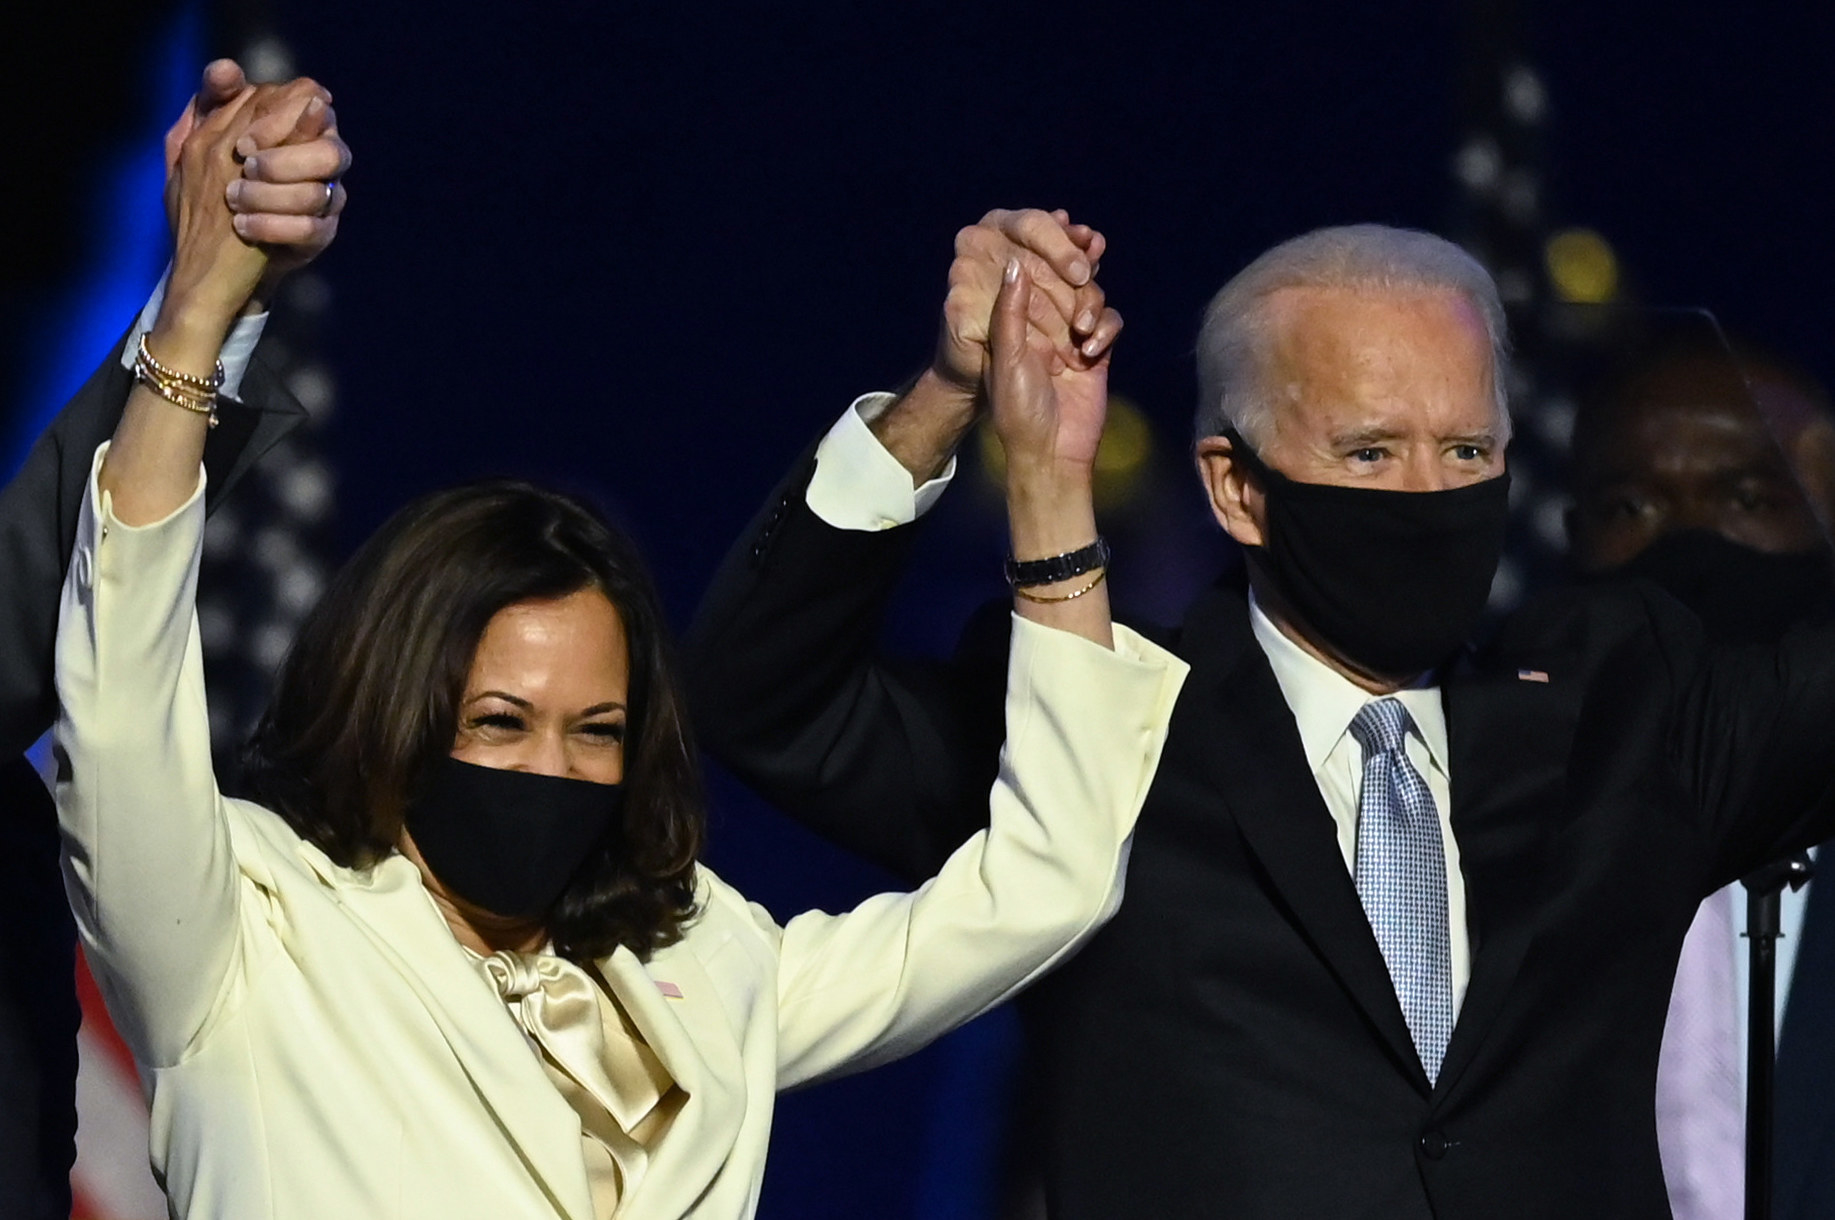 US President-elect Joe Biden and Vice President-elect Kamala Harris stand onstage after delivering remarks after being declared the winners of the presidential election